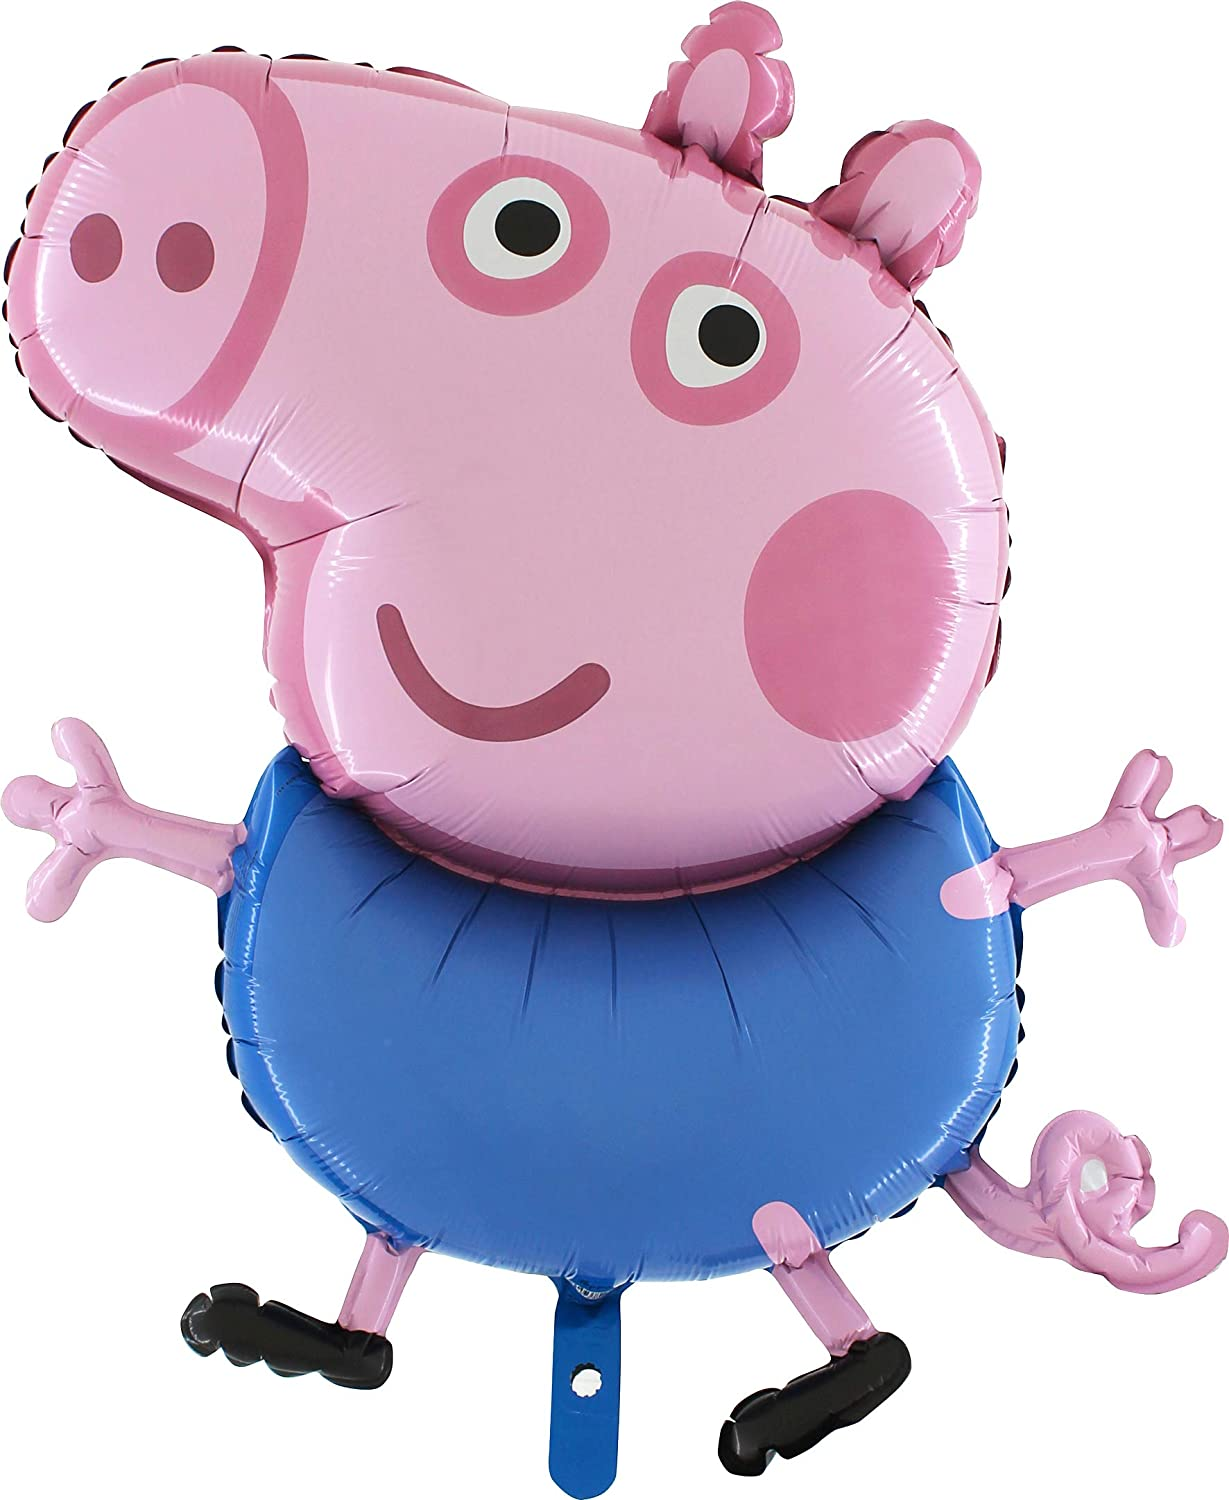 Amazon Com Peppa Pig Toyland 37 Inch Giant Jumbo Size Characters Peppa Or George Foil Balloon Kids Party Balloons George Pig Toys Games